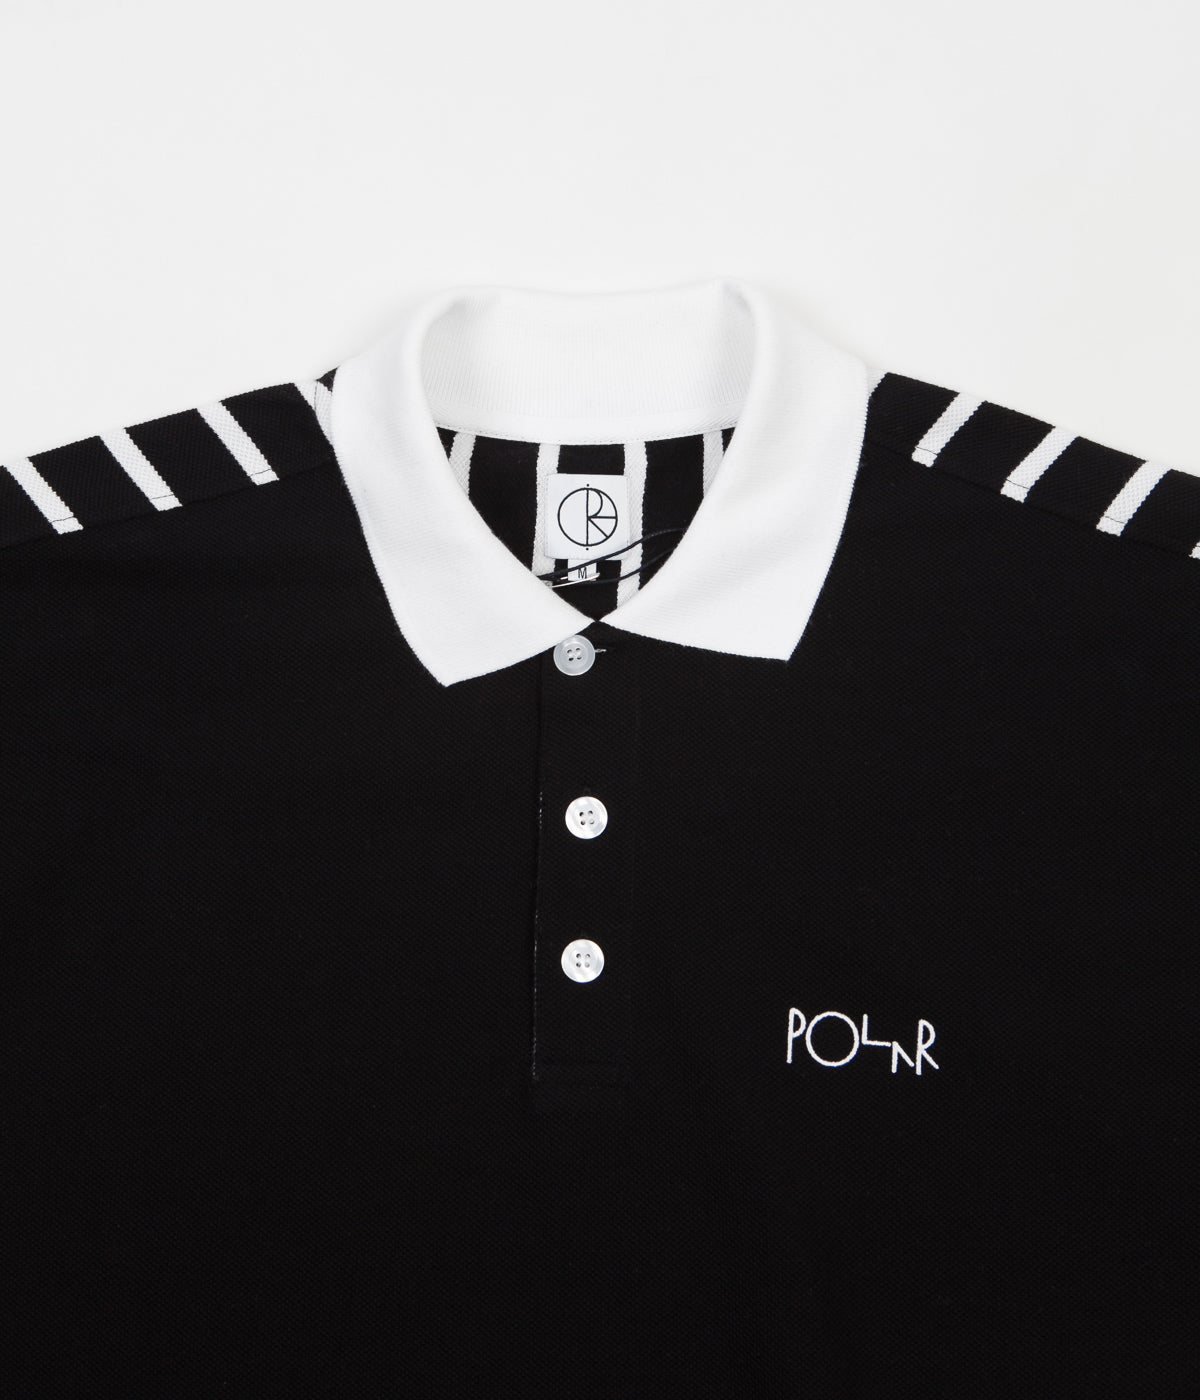 Polar Duo Pique Polo Shirt - Black